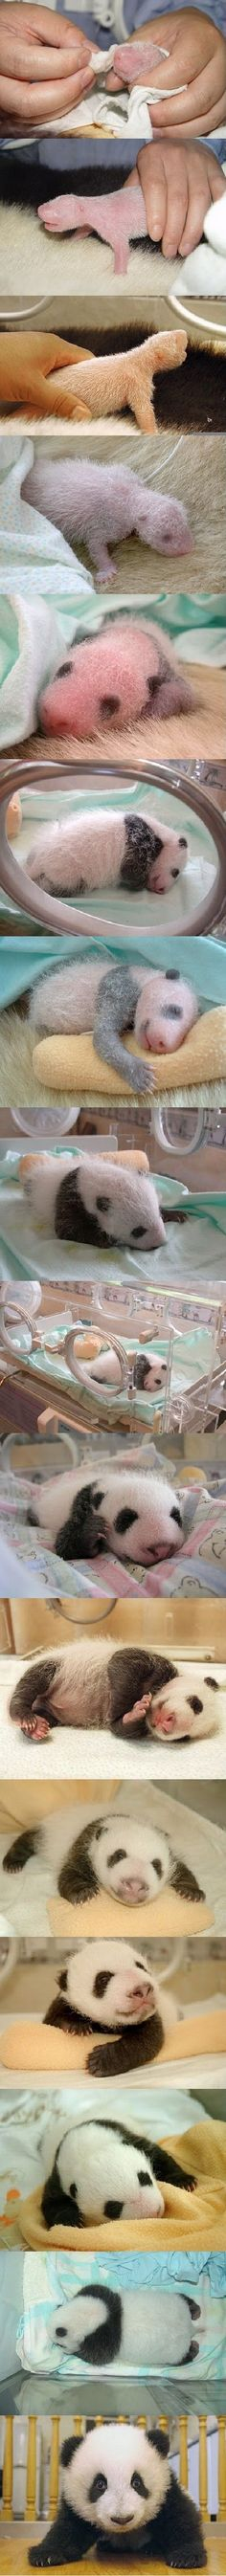 Baby panda evolution | Teh Cute - Cute puppies, cute kittens & other adorable cute animals